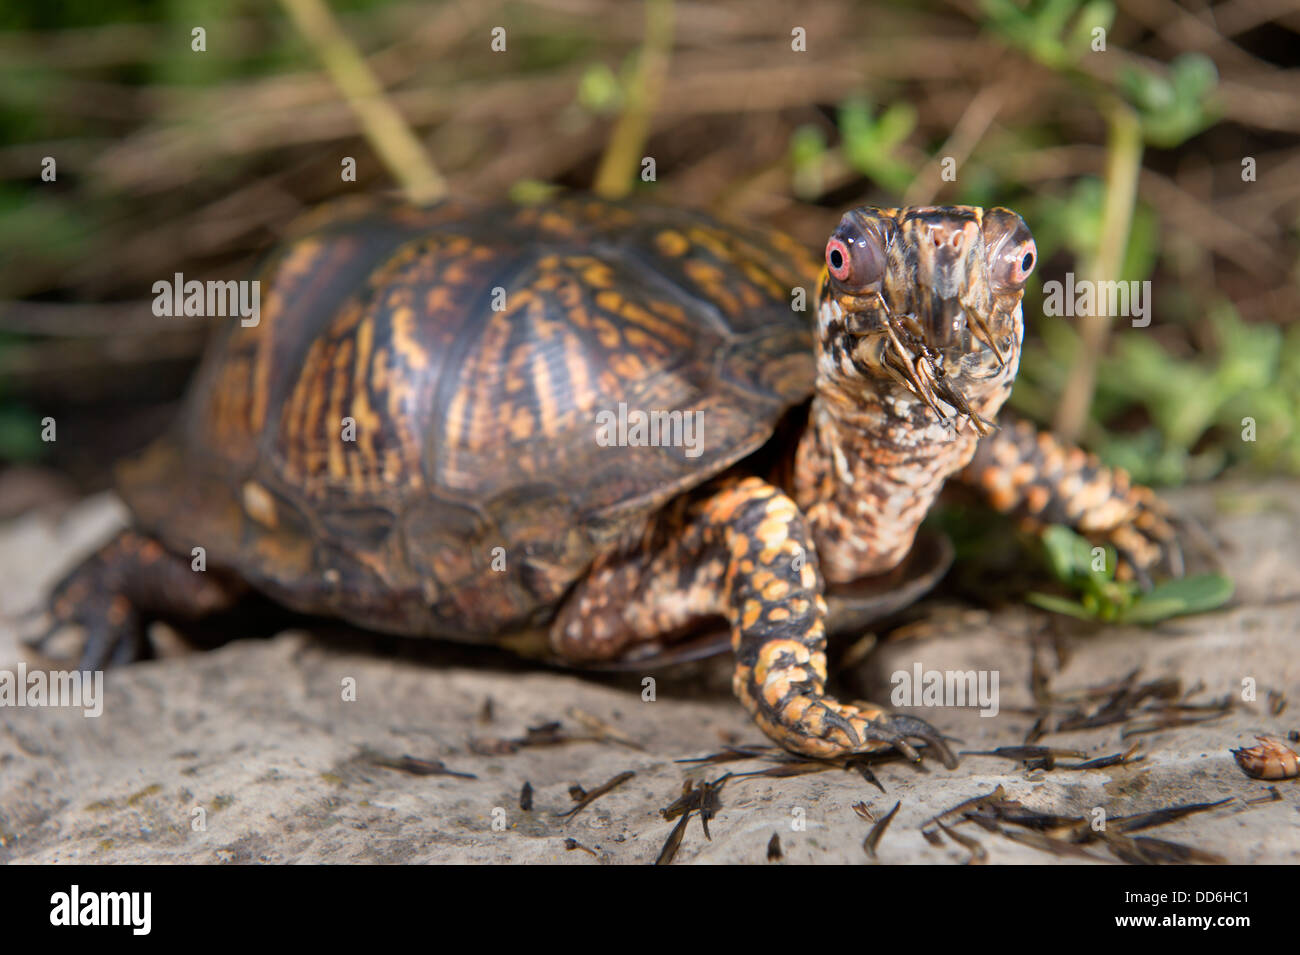 Full shot of a brown spotted  box turtle sitting on a rock looking at the camera. - Stock Image